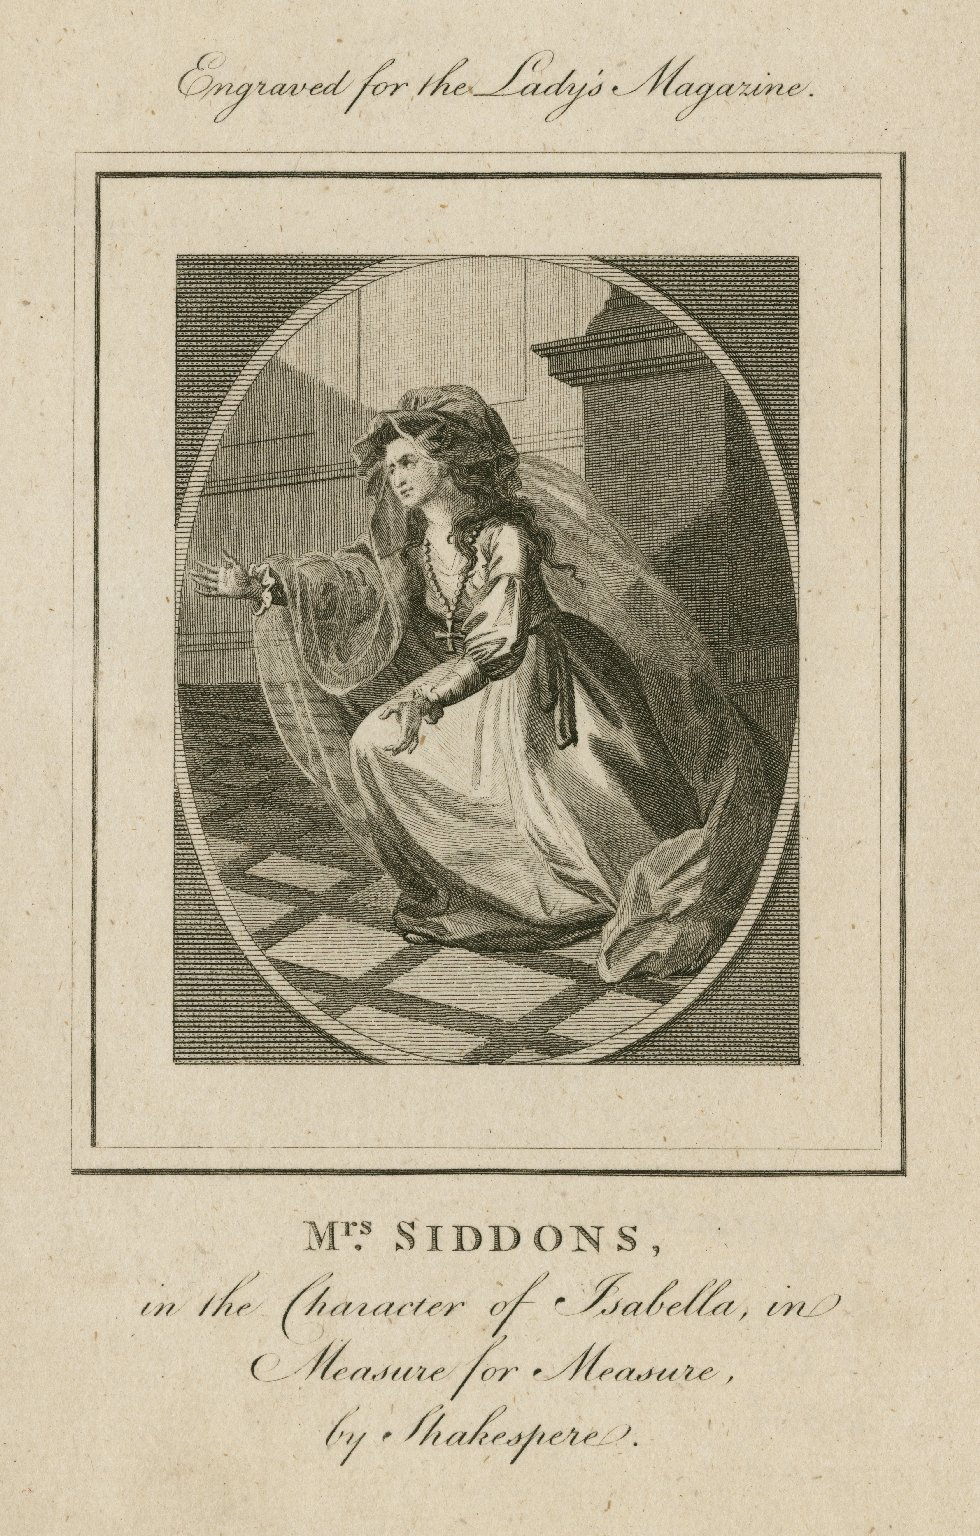 Mrs. Siddons in the character of Isabella, in Measure for measure, by Shakespeare [graphic].